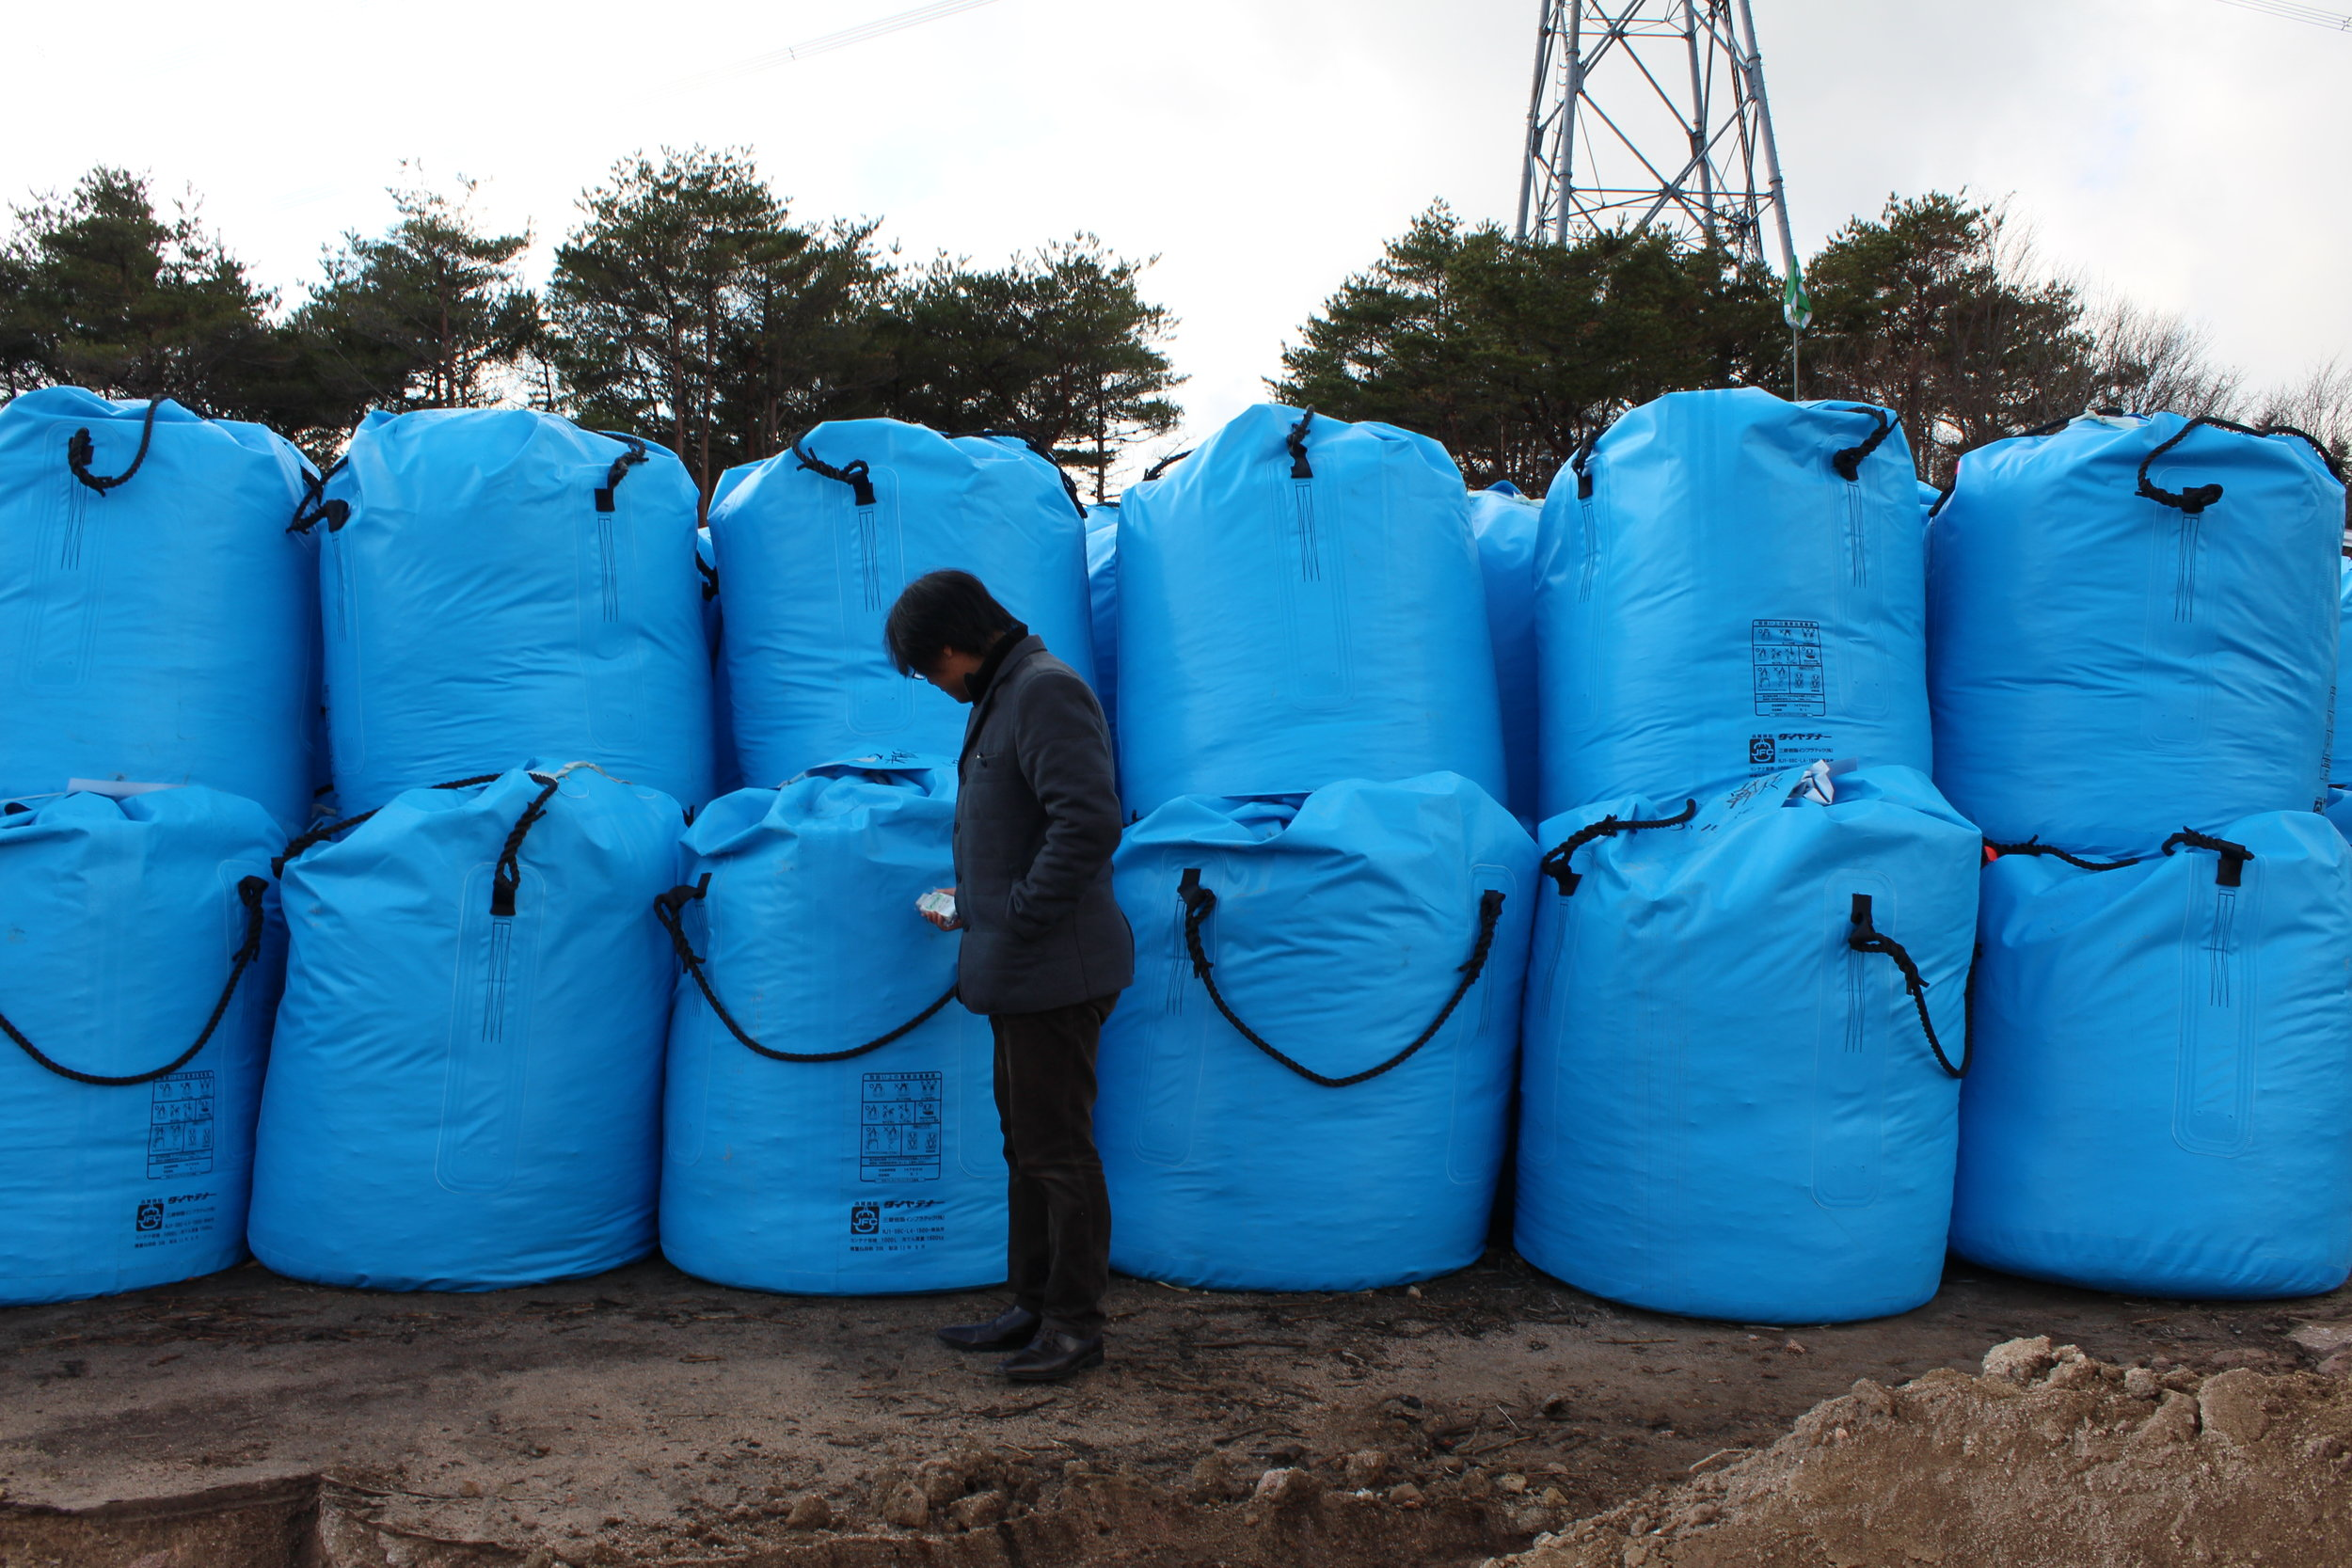 Bags of radioative waste awaiting some final, safe resting place.3.JPG